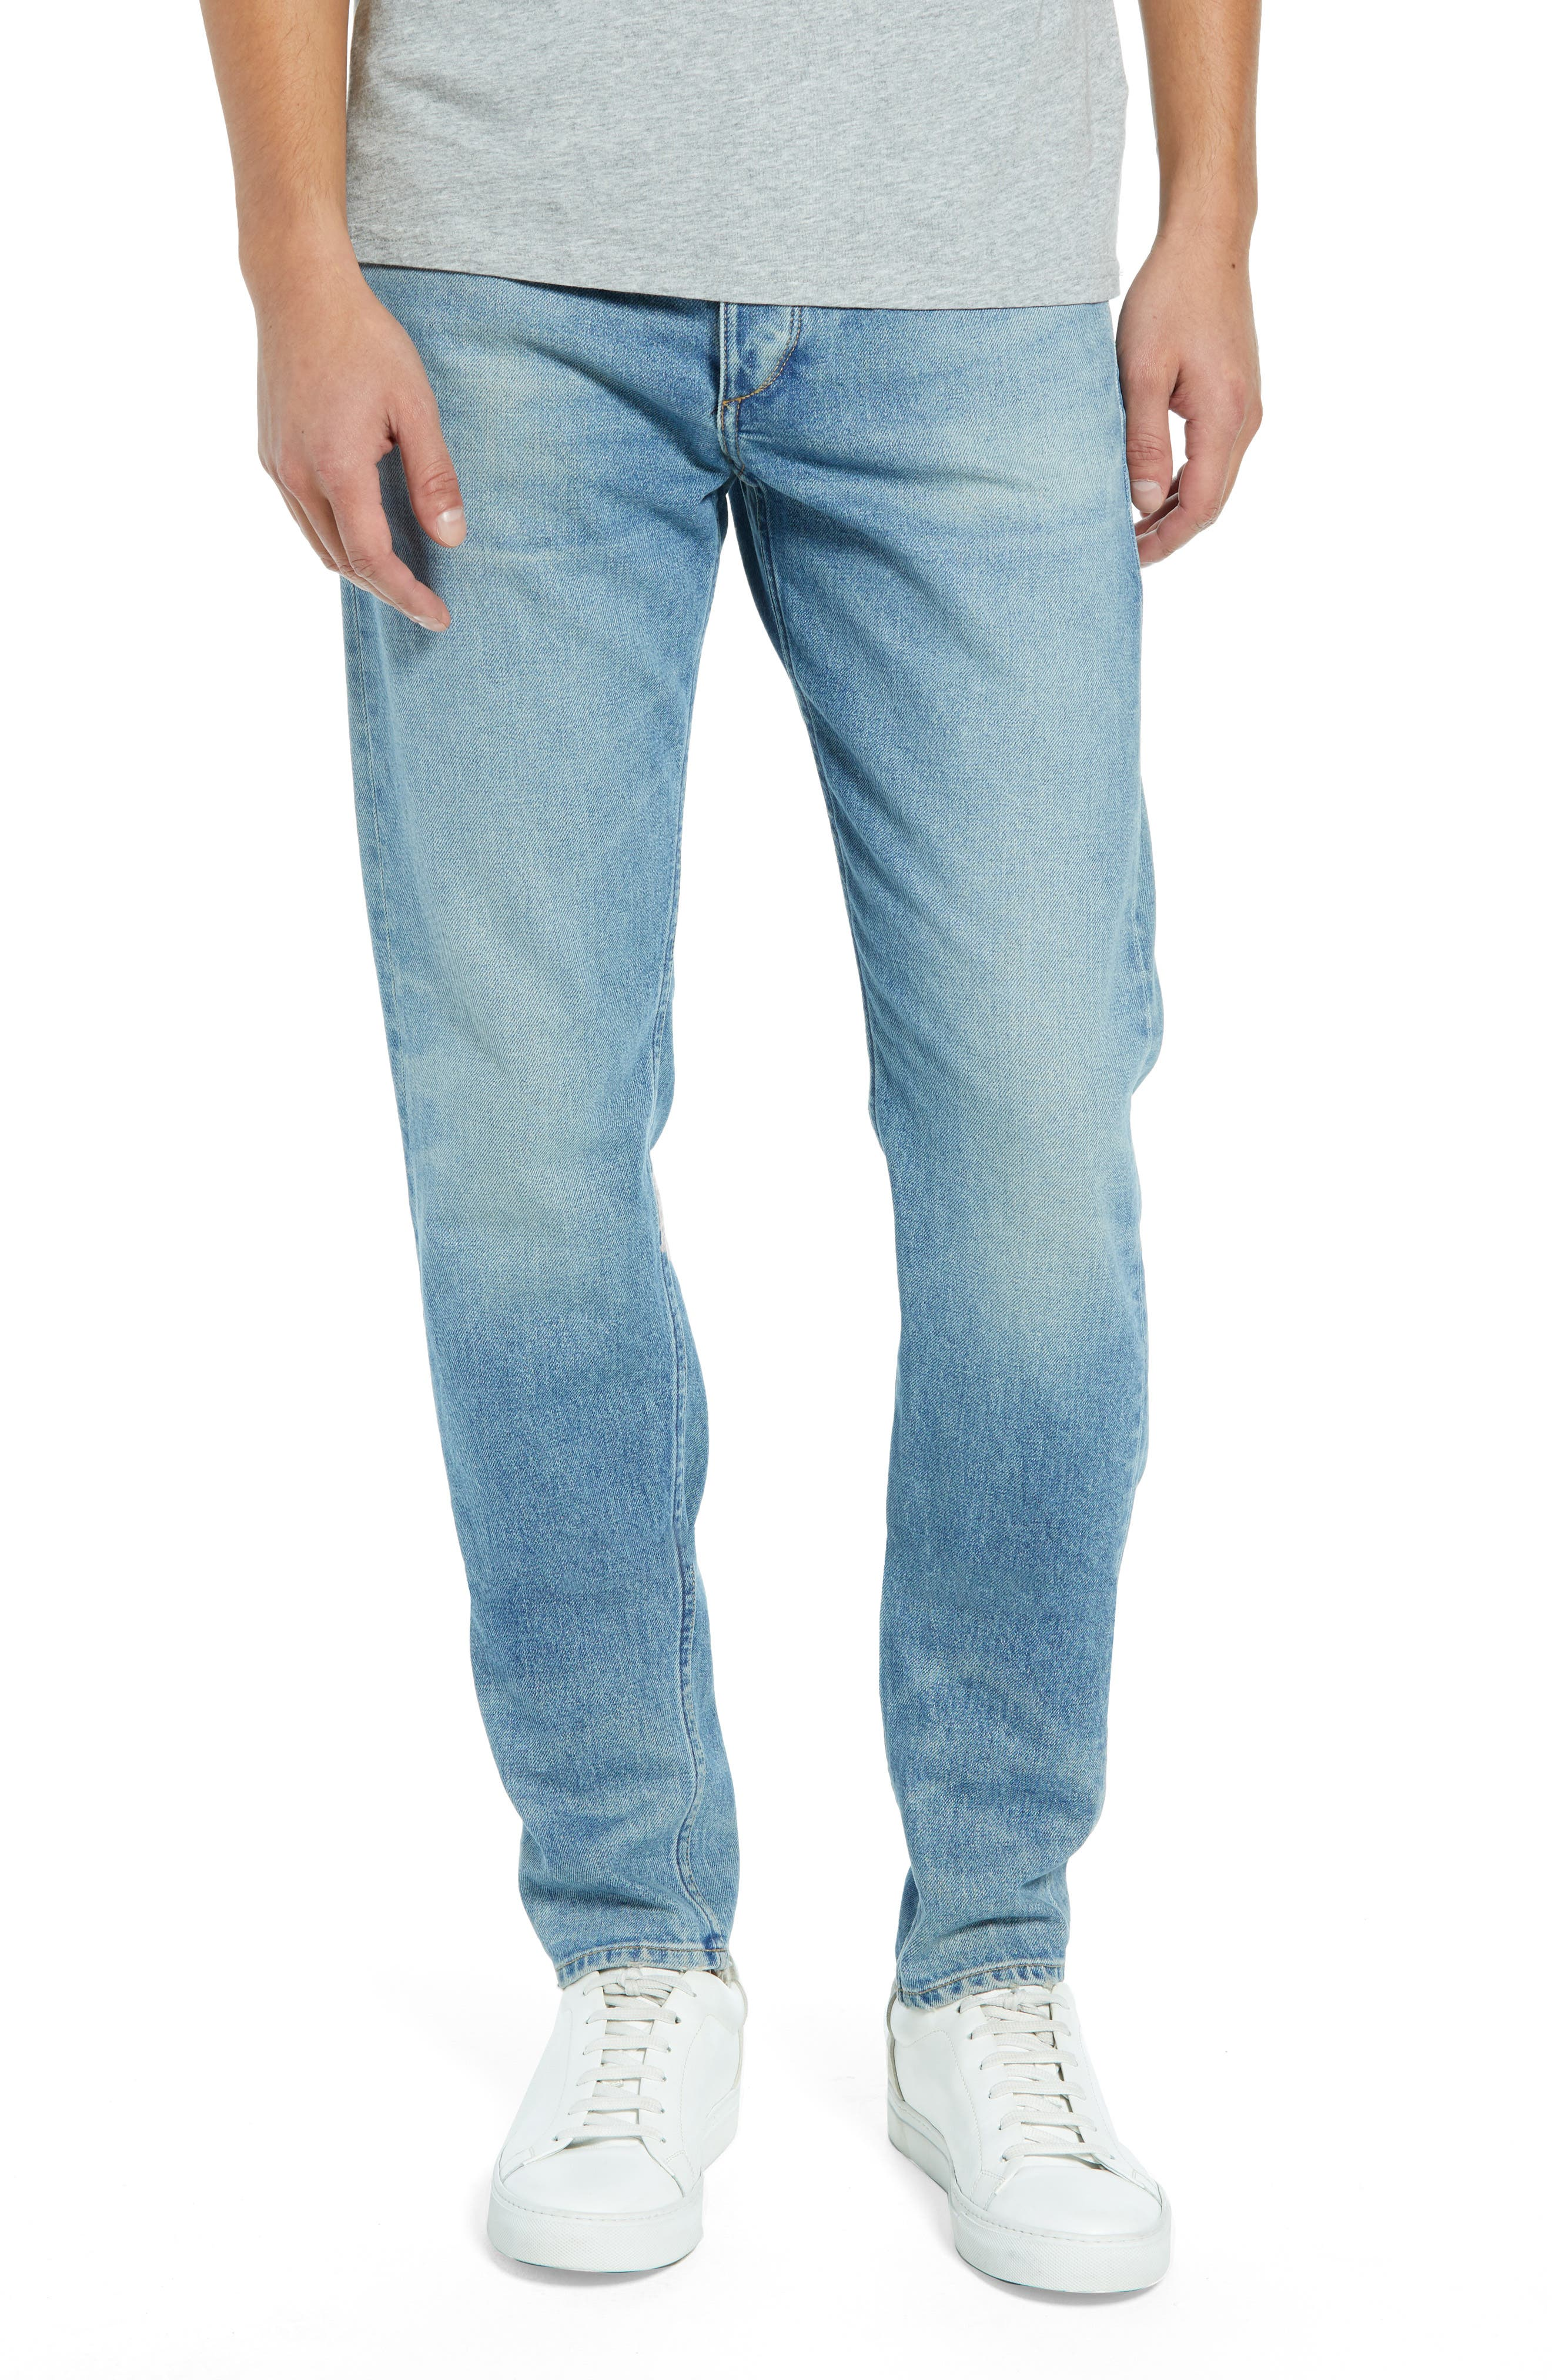 Fit 1 Skinny Fit Jeans,                             Main thumbnail 1, color,                             JAMIE